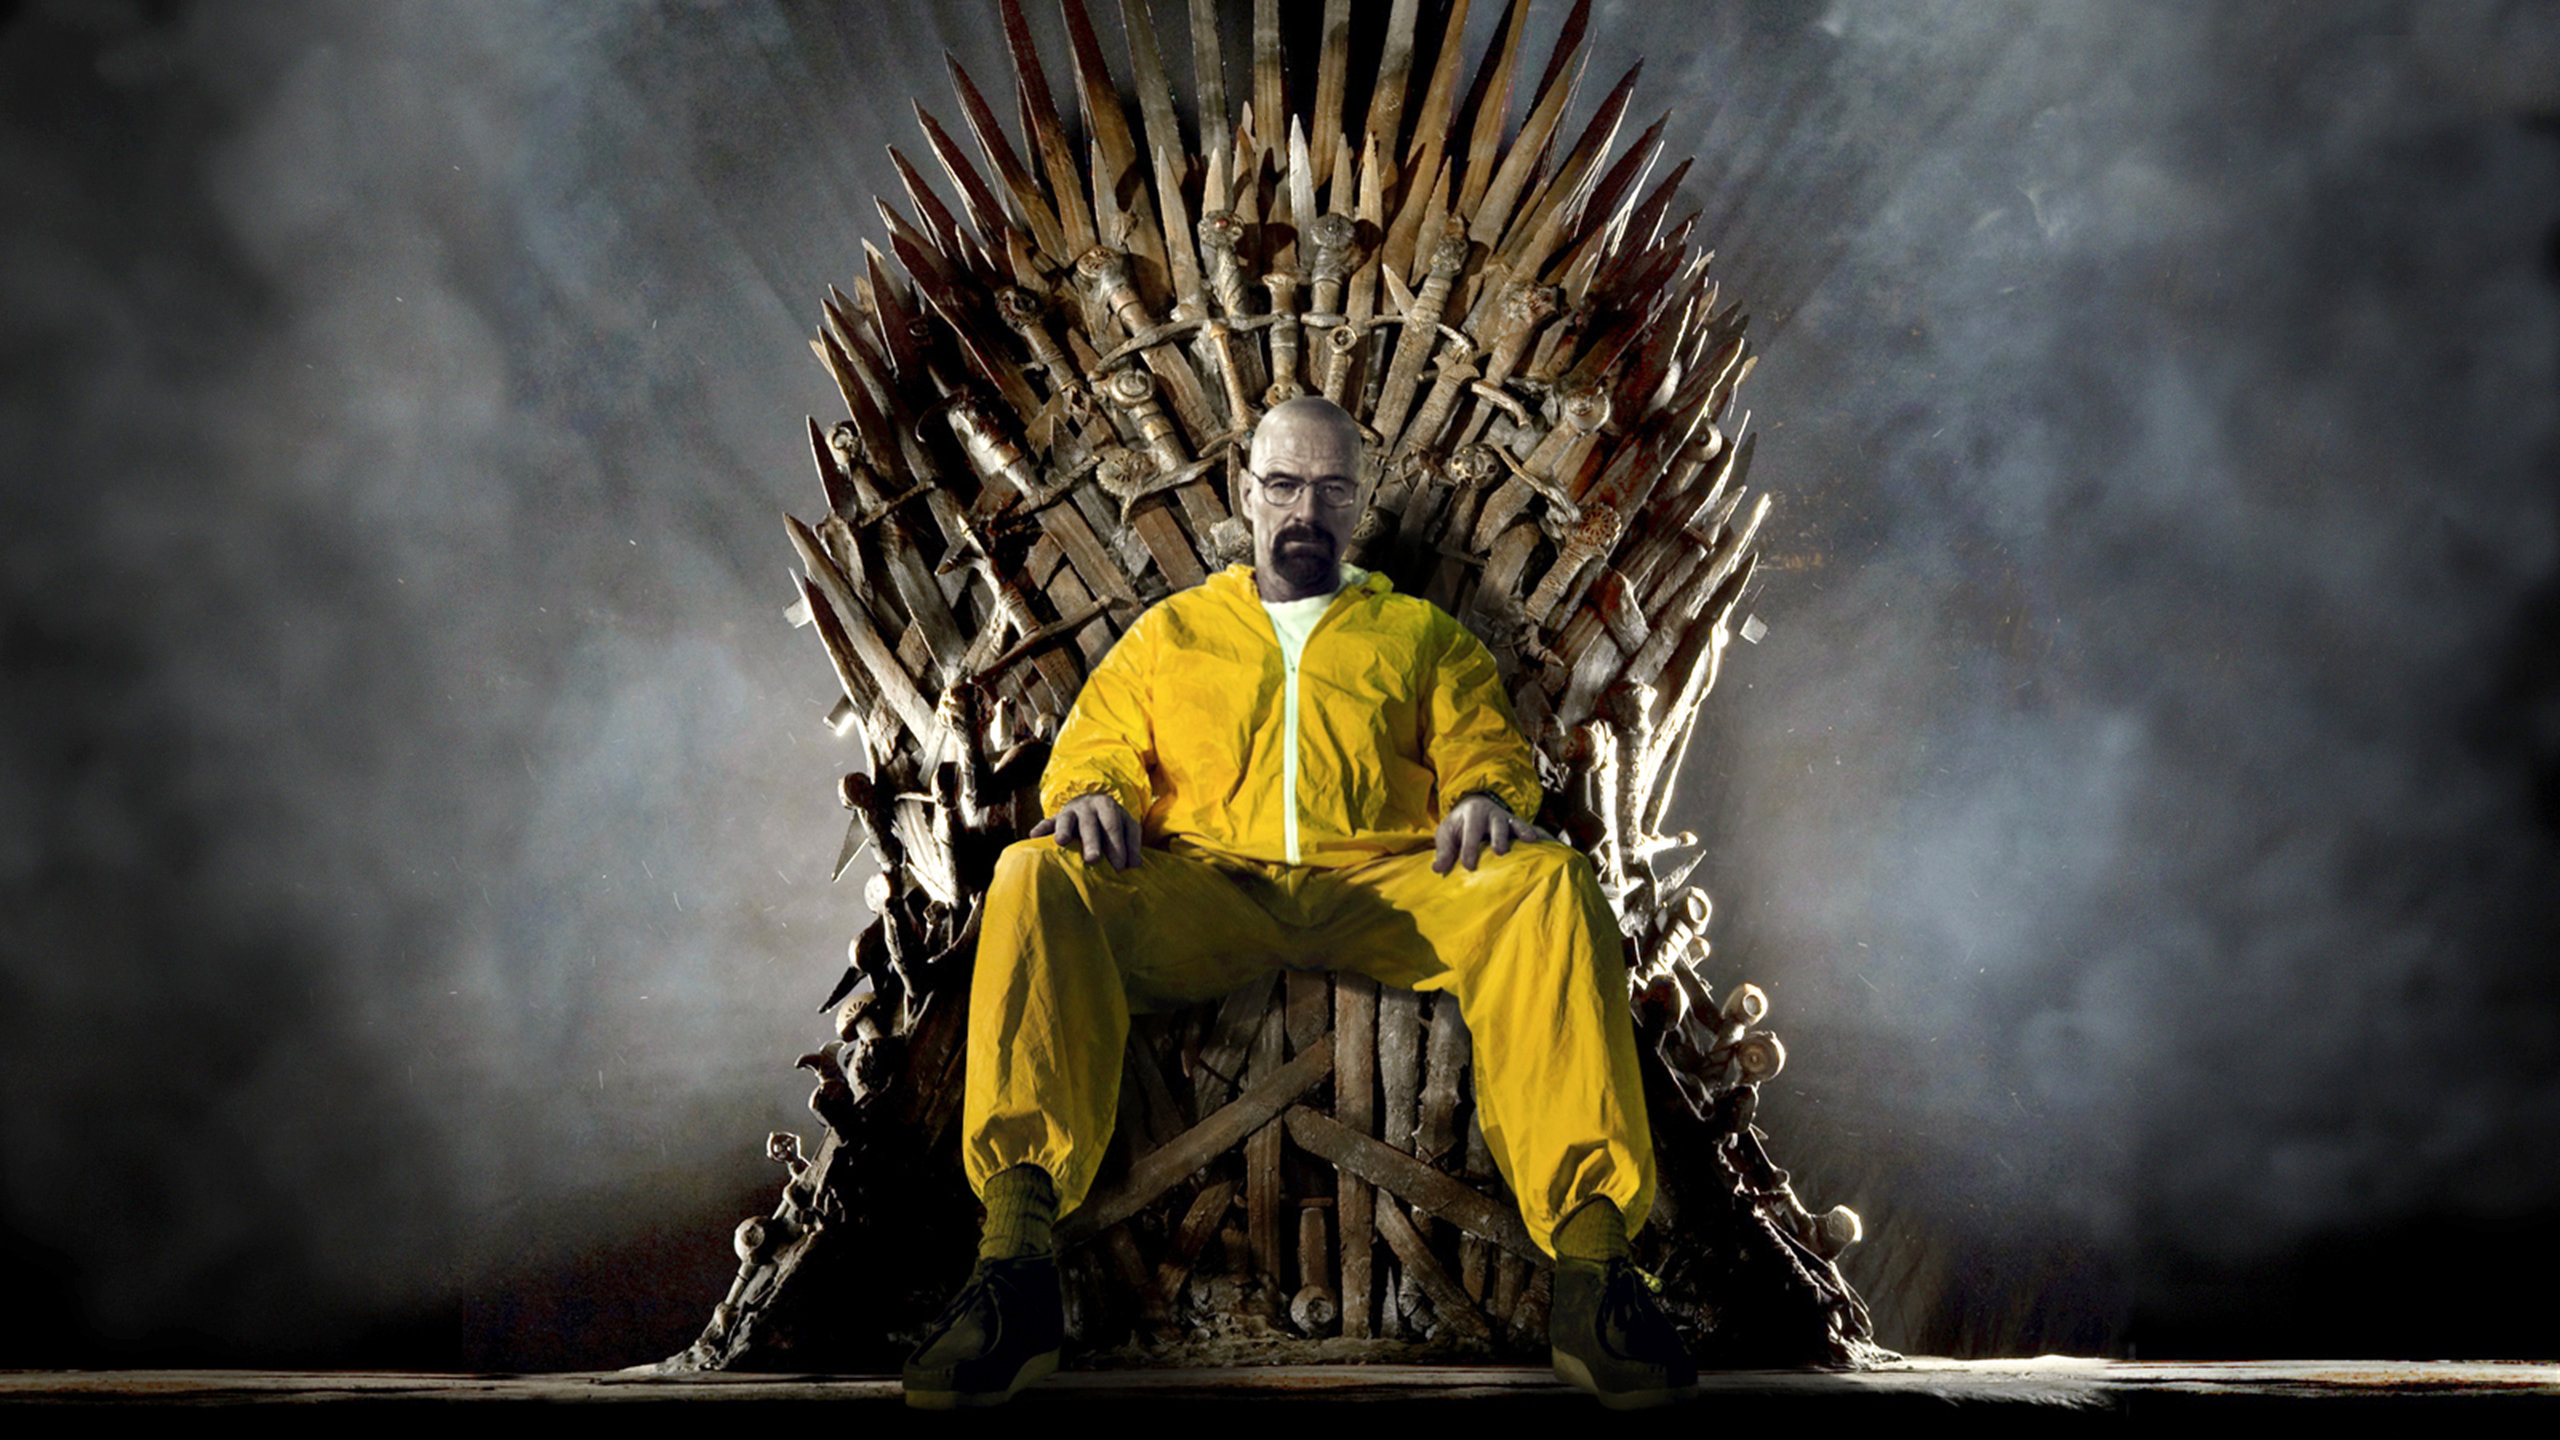 Free Download Breaking Bad Background Id 401125 Hd 2560x1440 For Computer